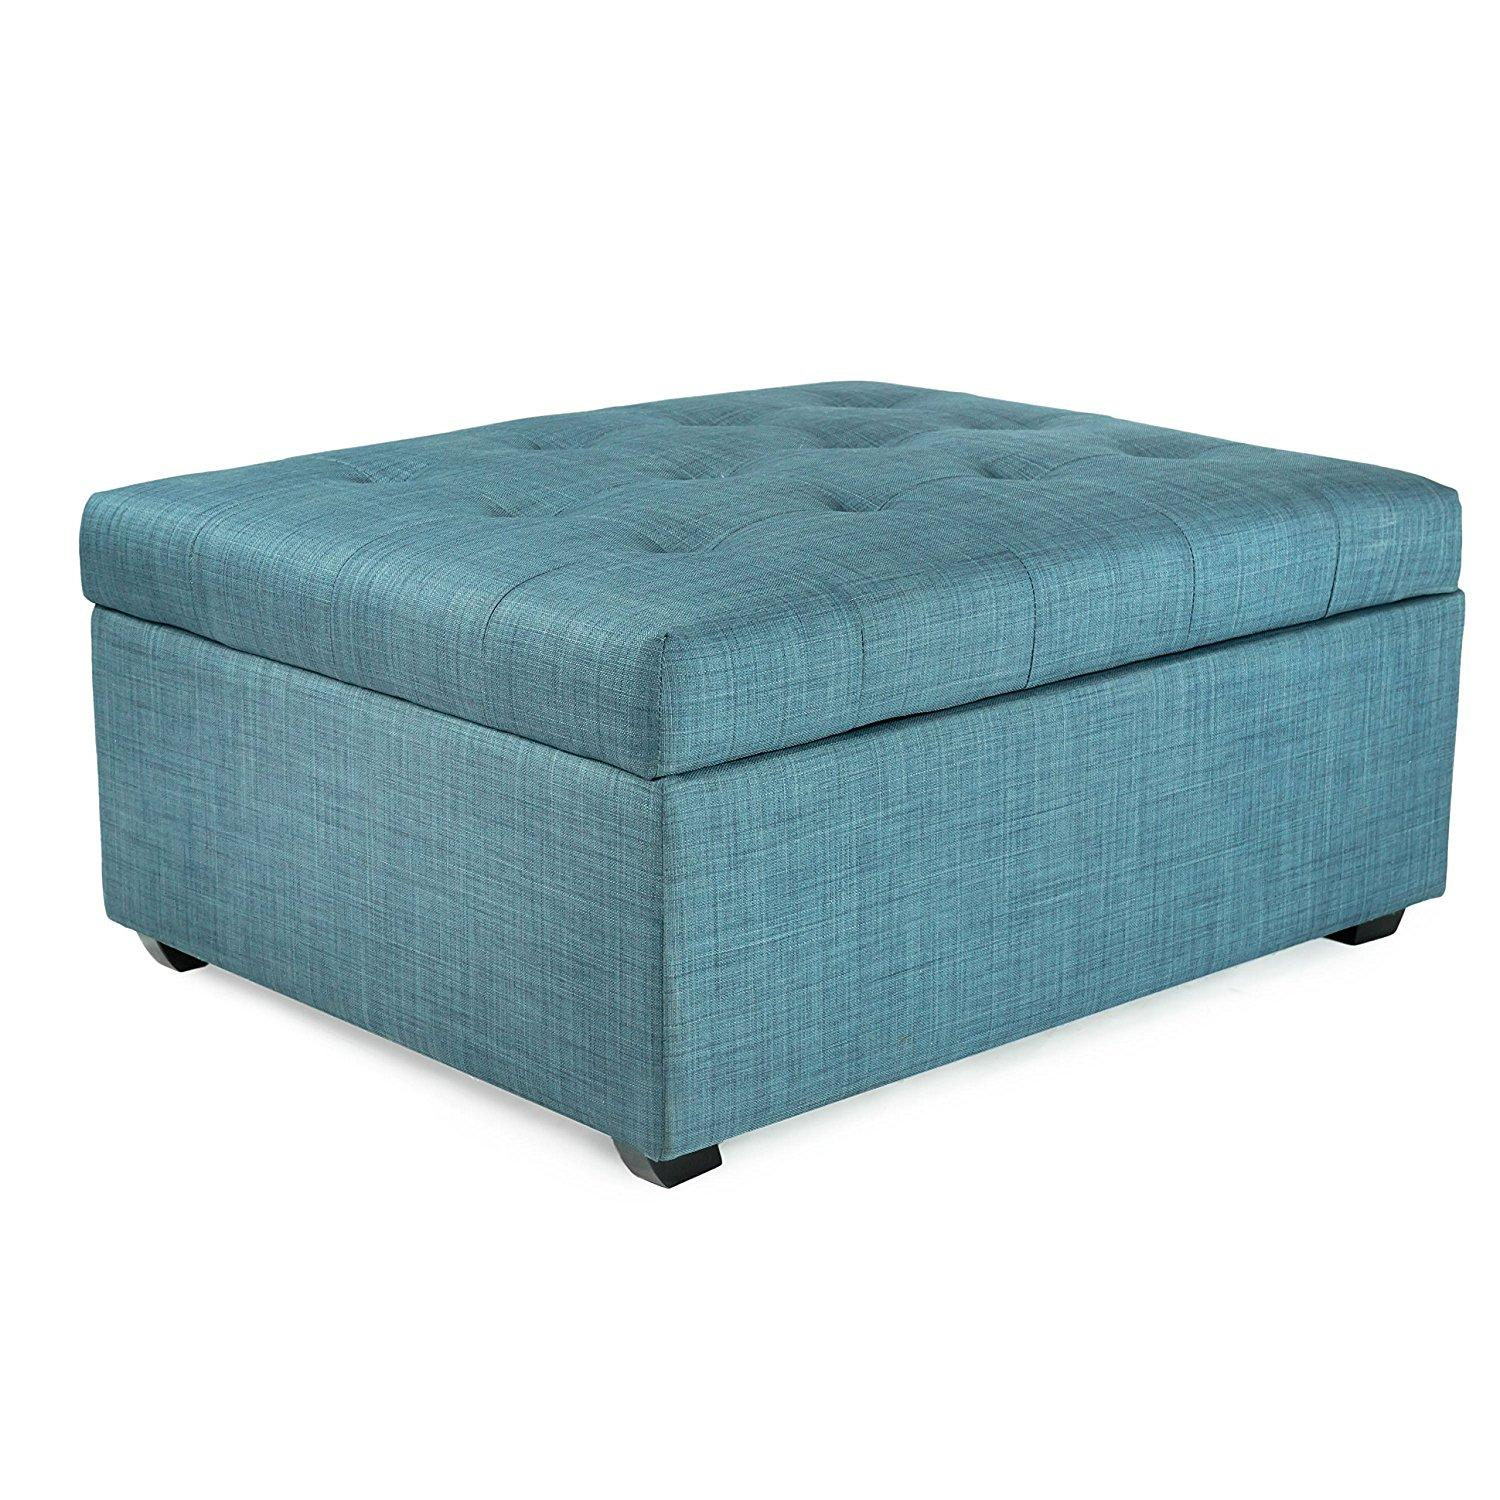 Ibed Guest Bed Ottoman Convertible